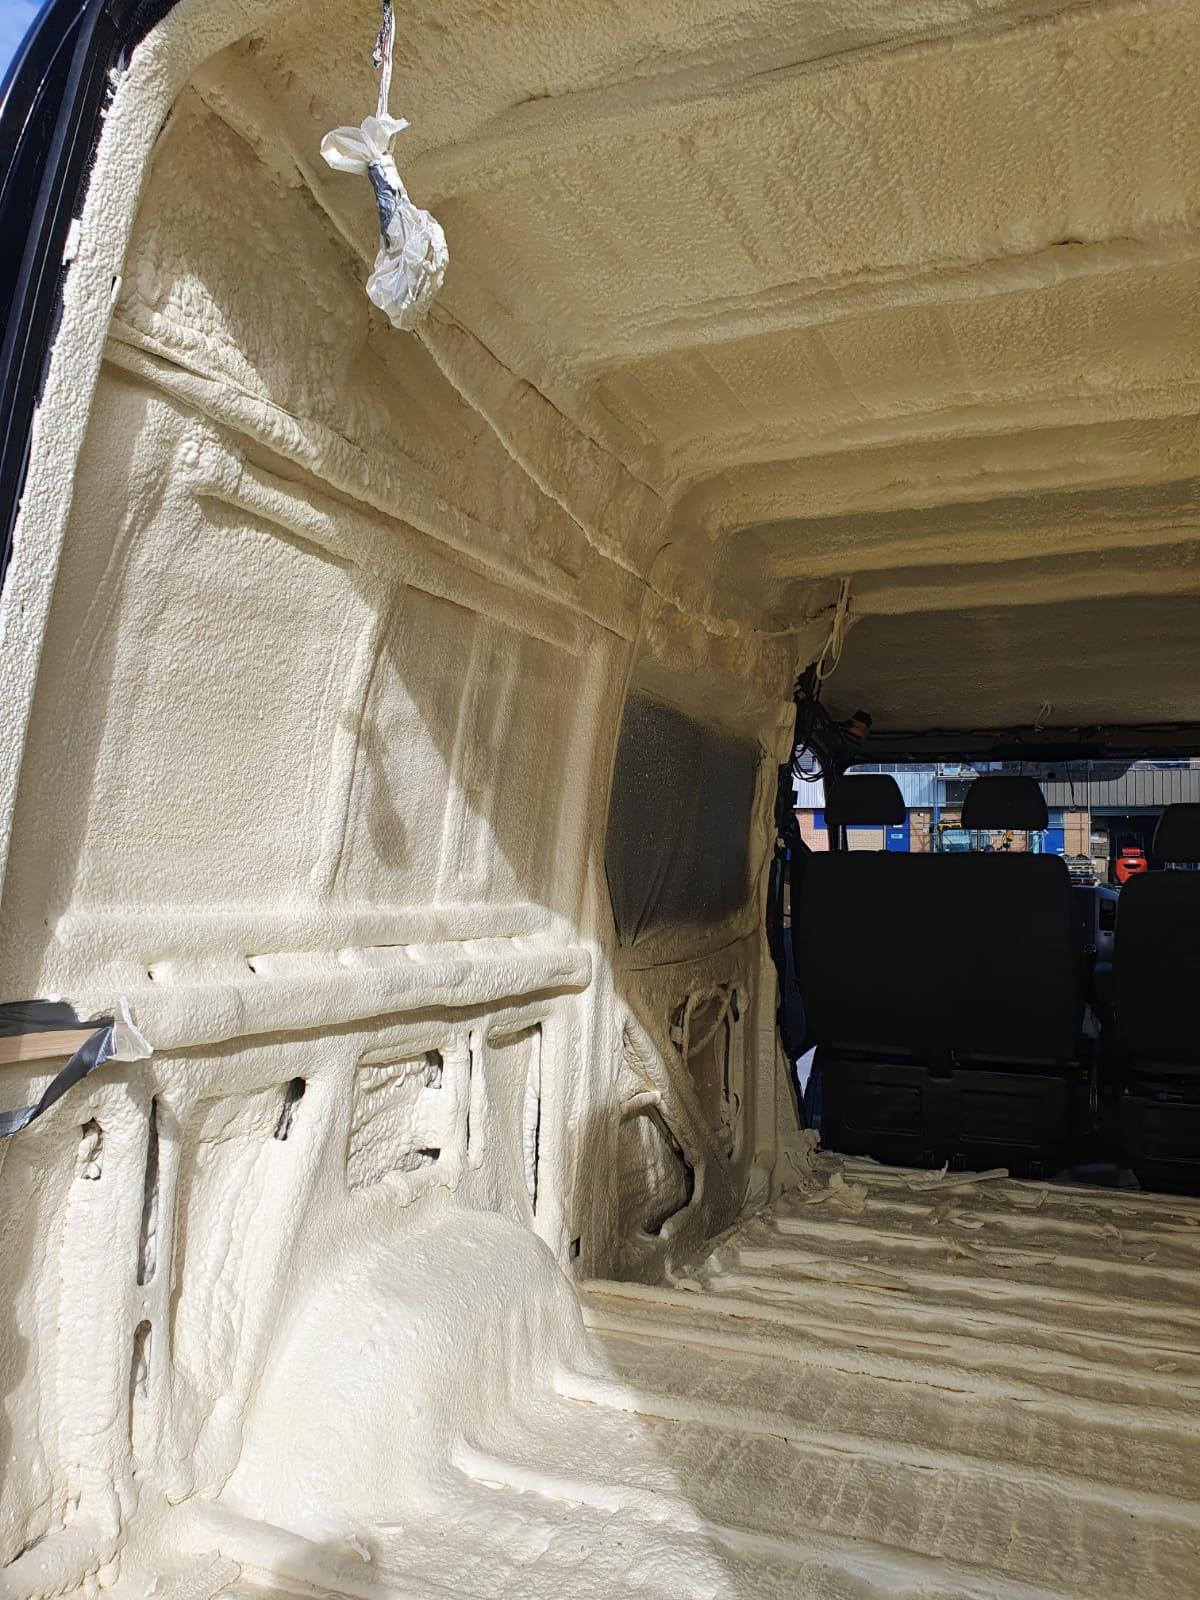 spray foam insulation inside camper van